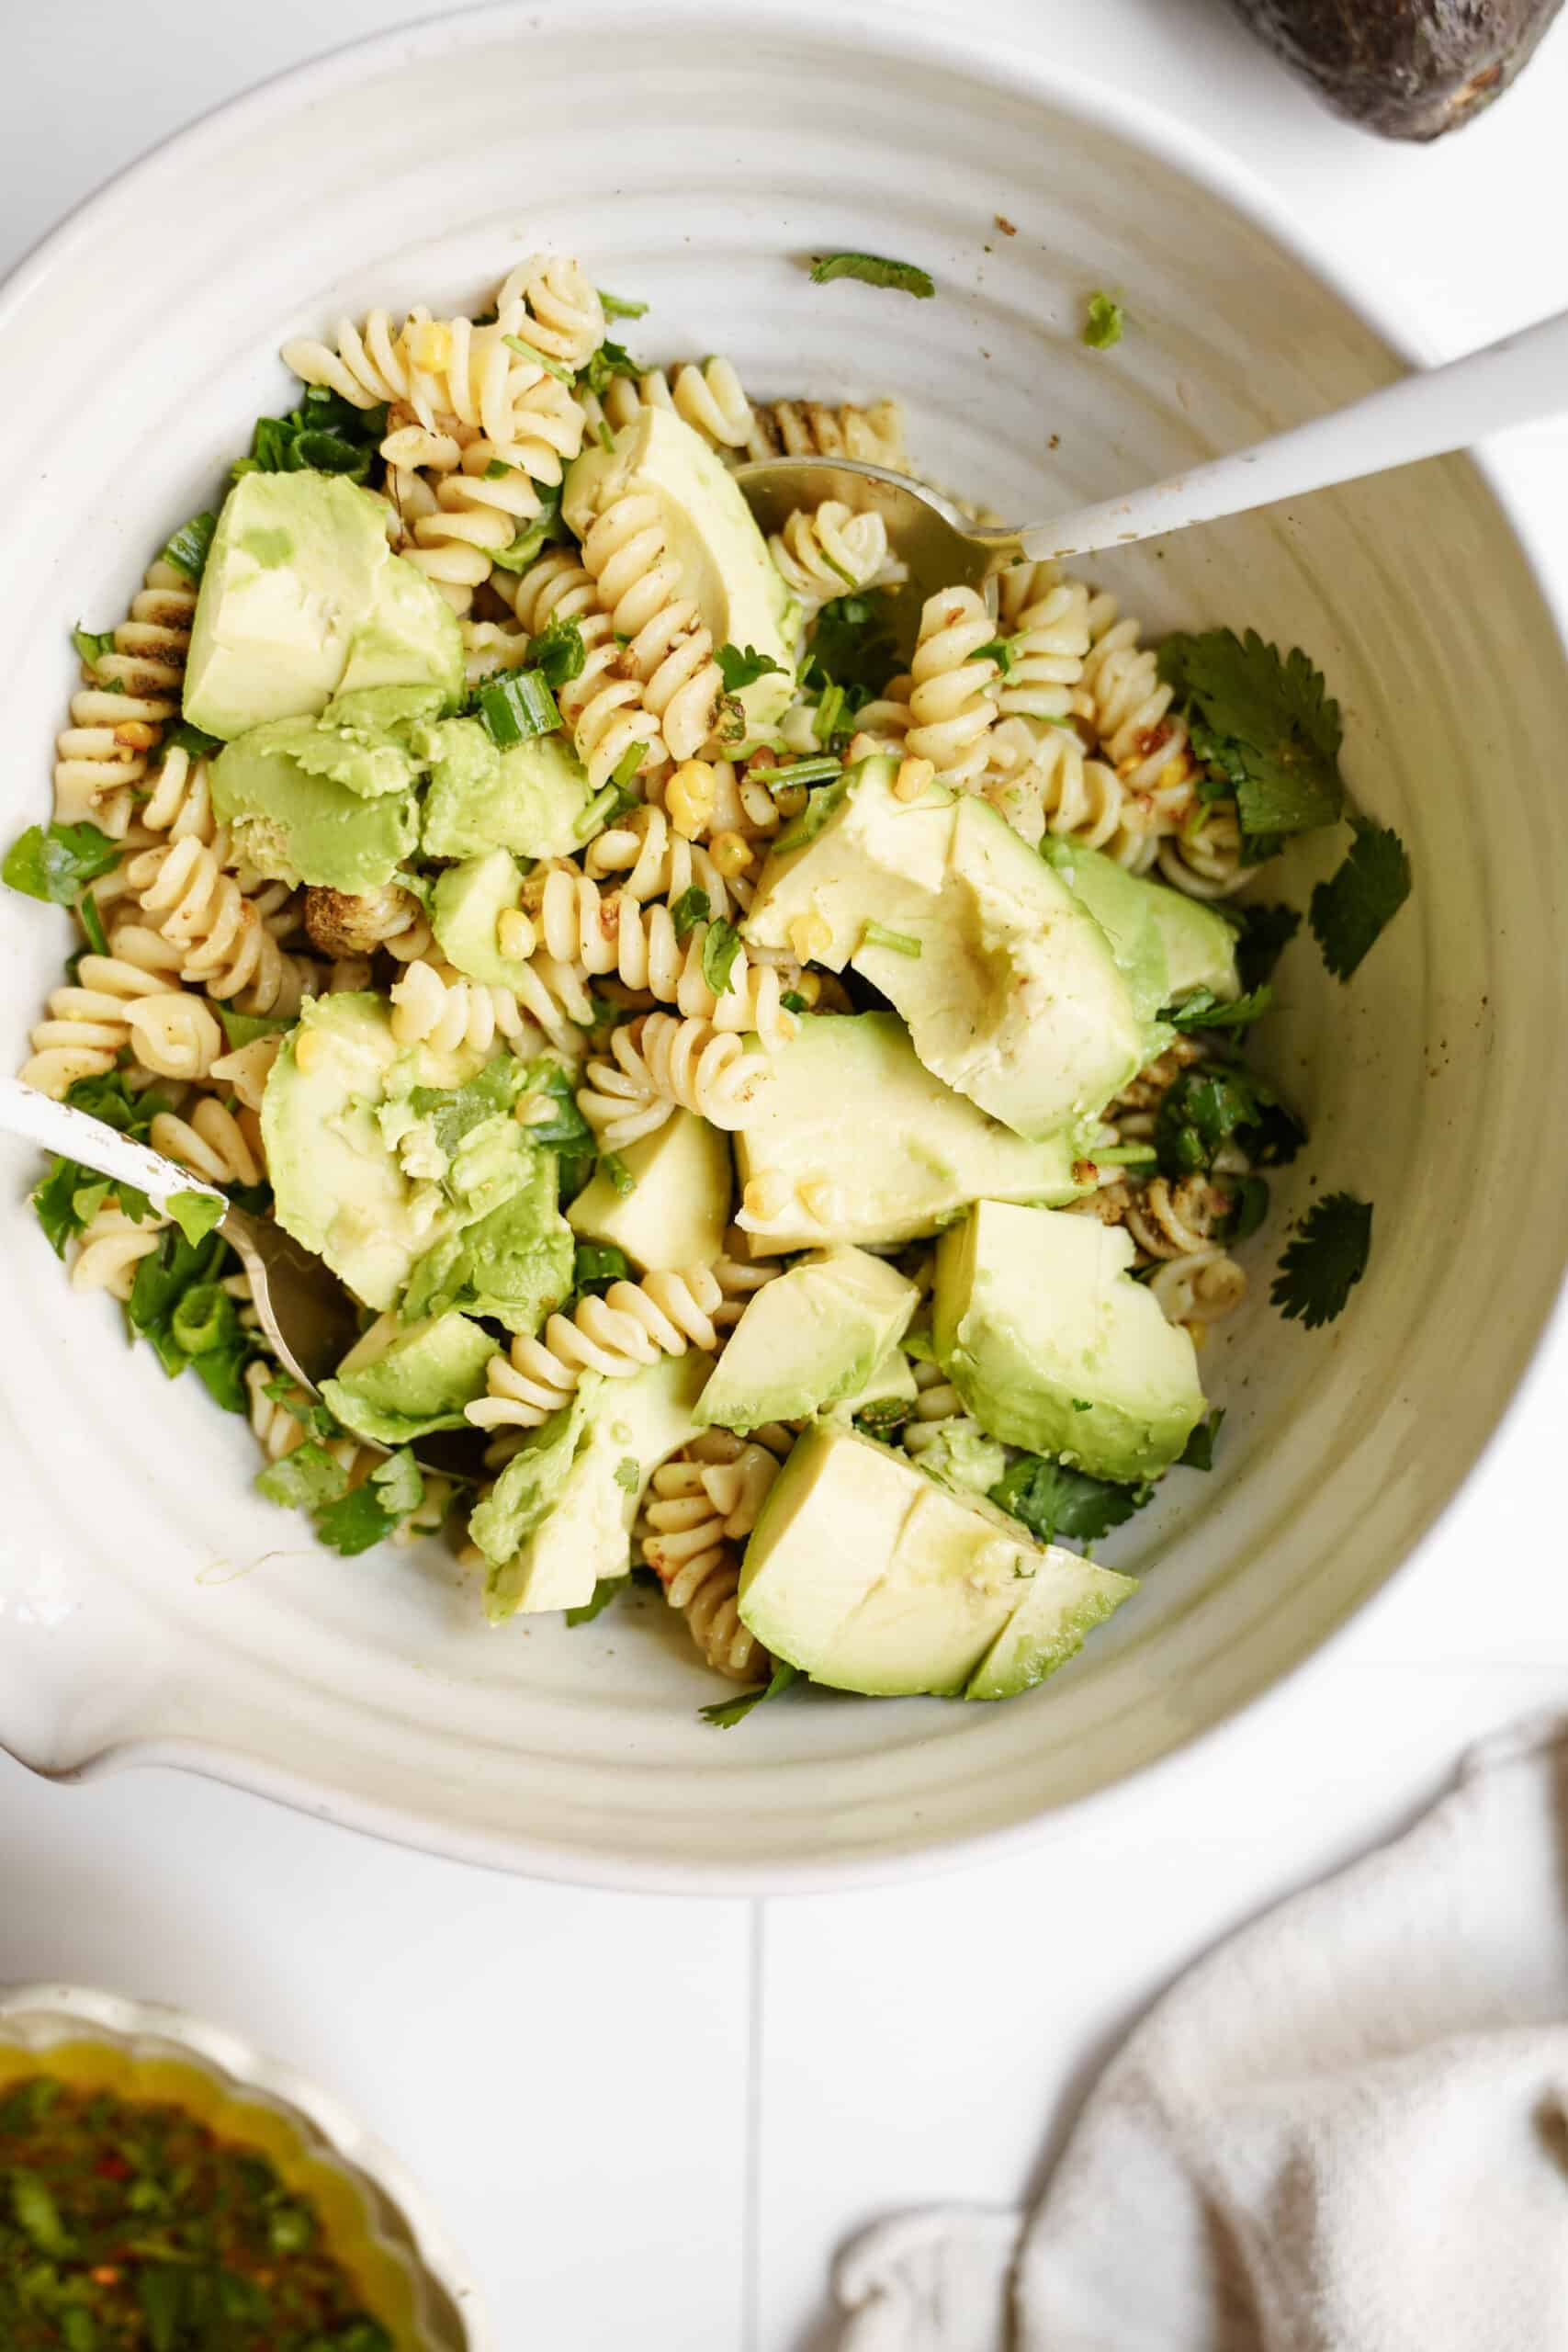 All ingredients for avocado pasta salad mixed in bowl